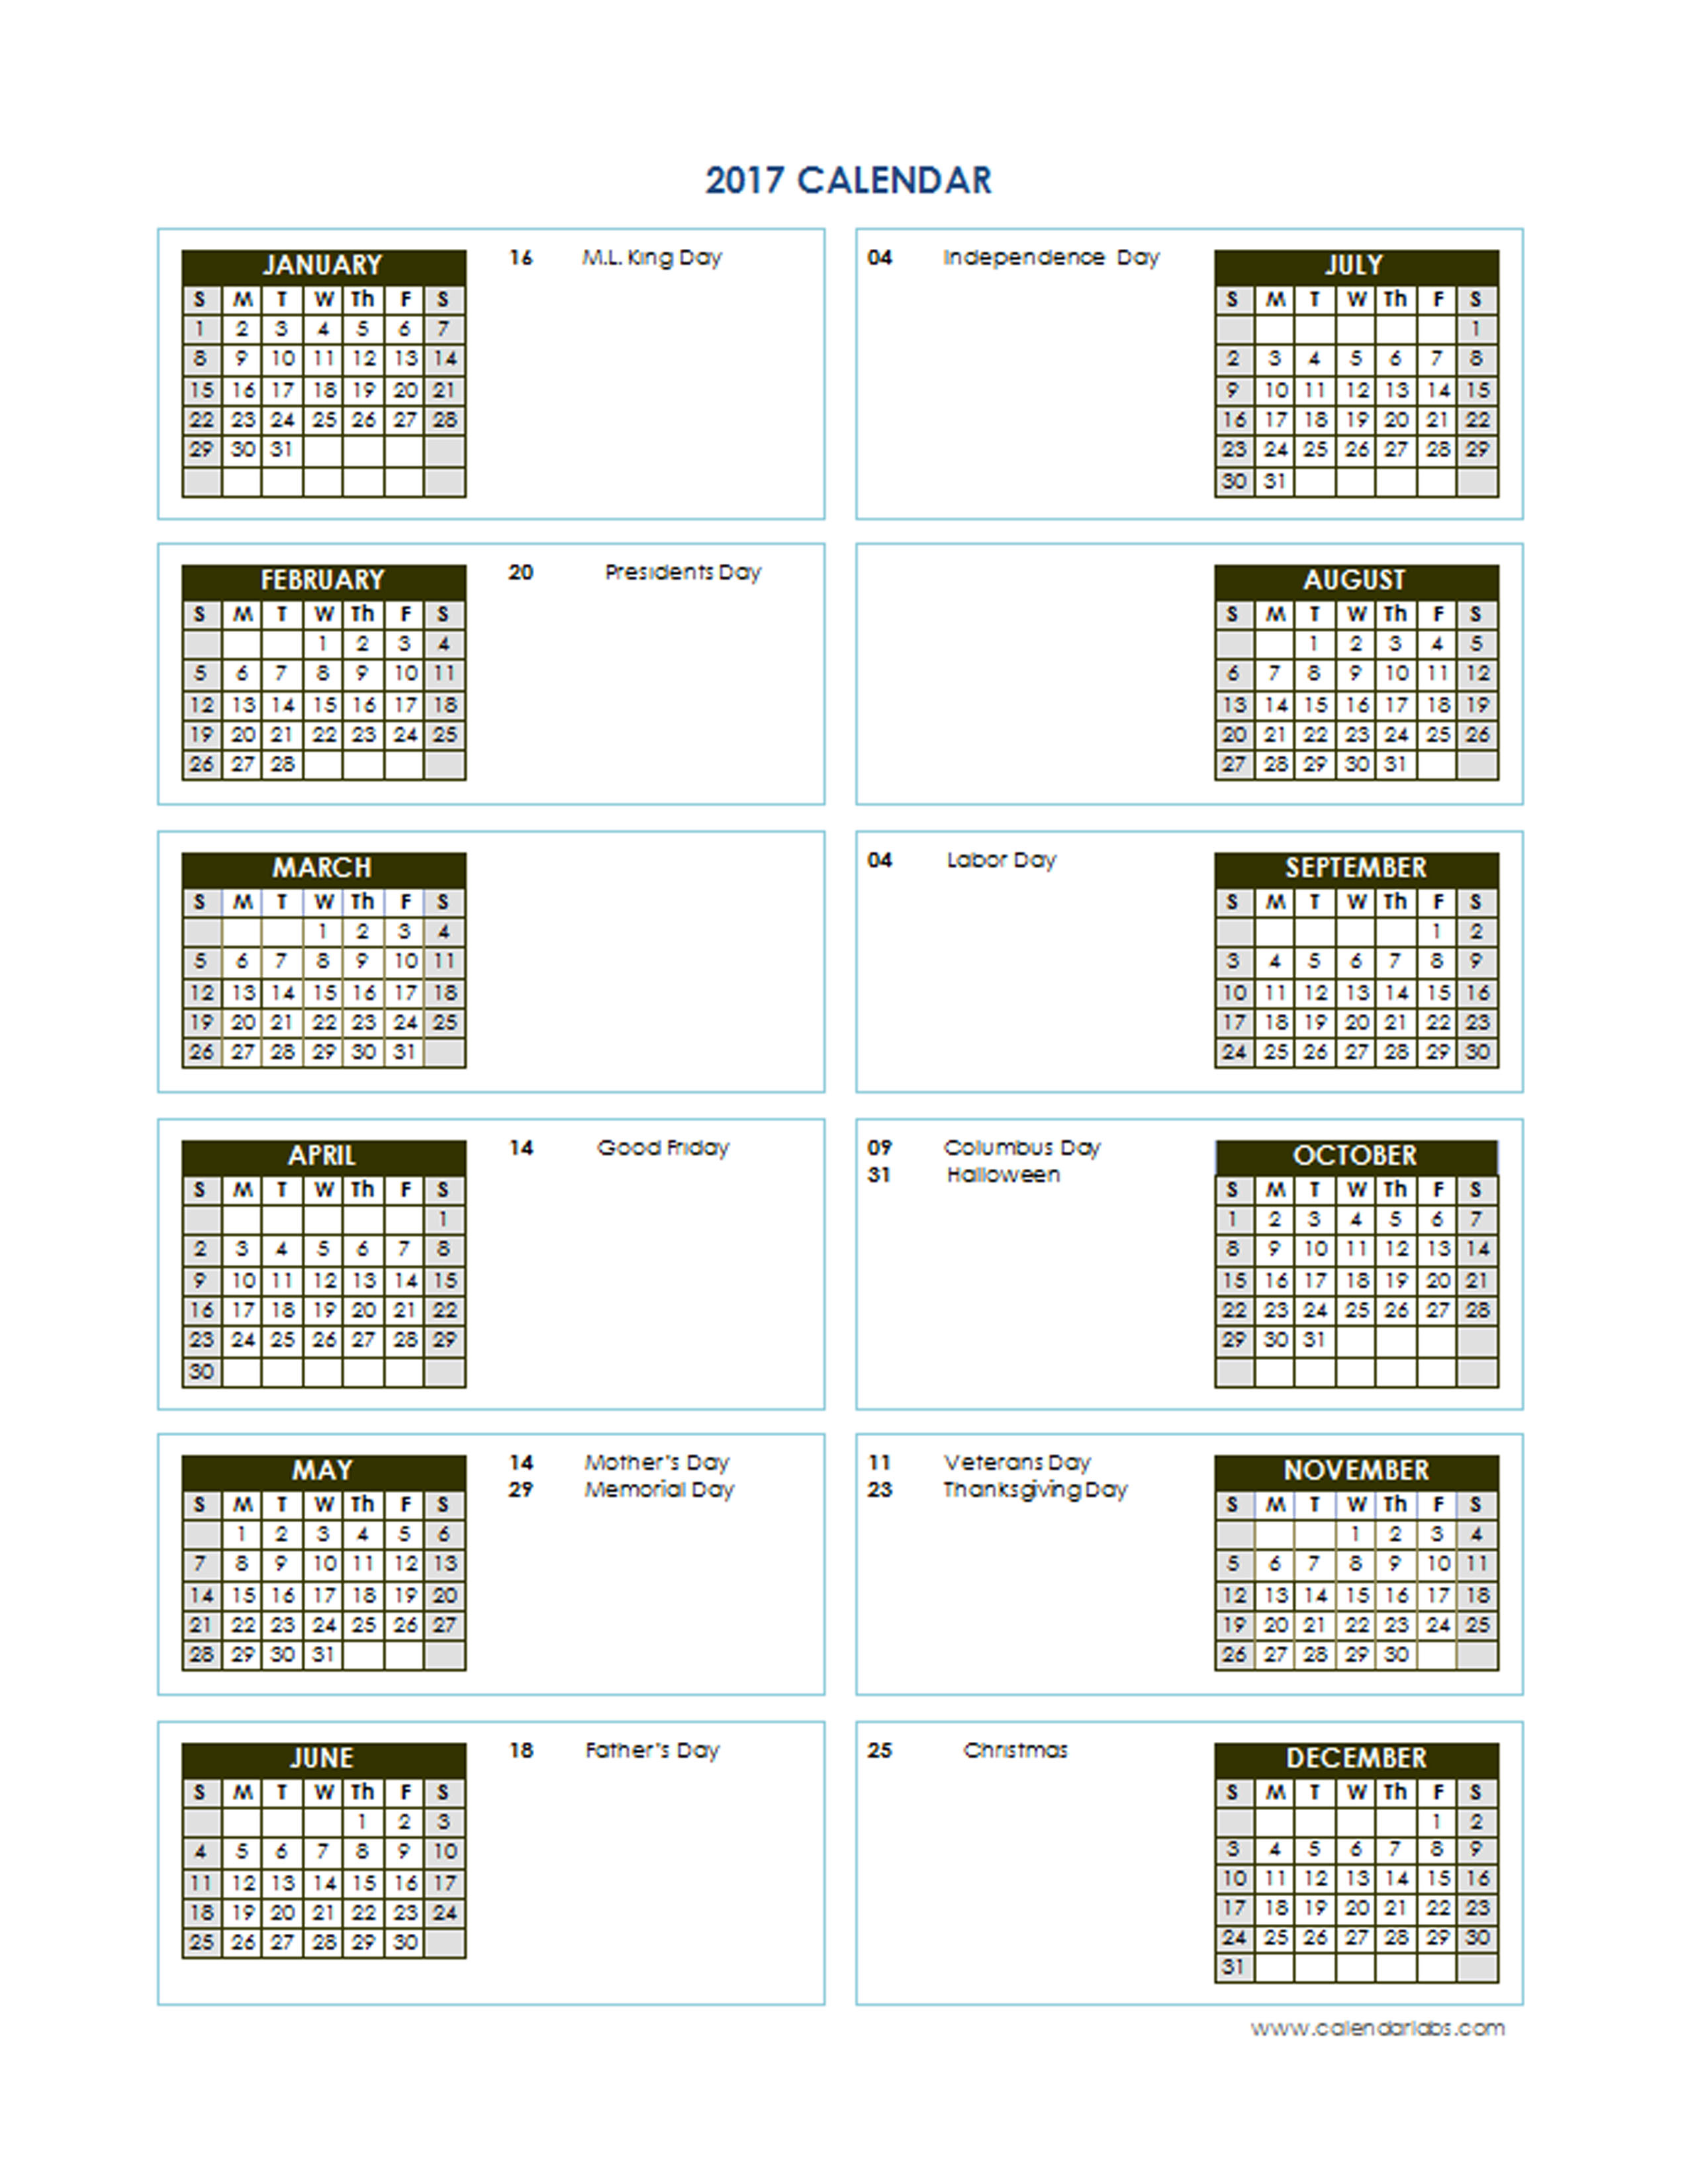 2017 Yearly Calendar Template Vertical 02 - Free Printable Templates